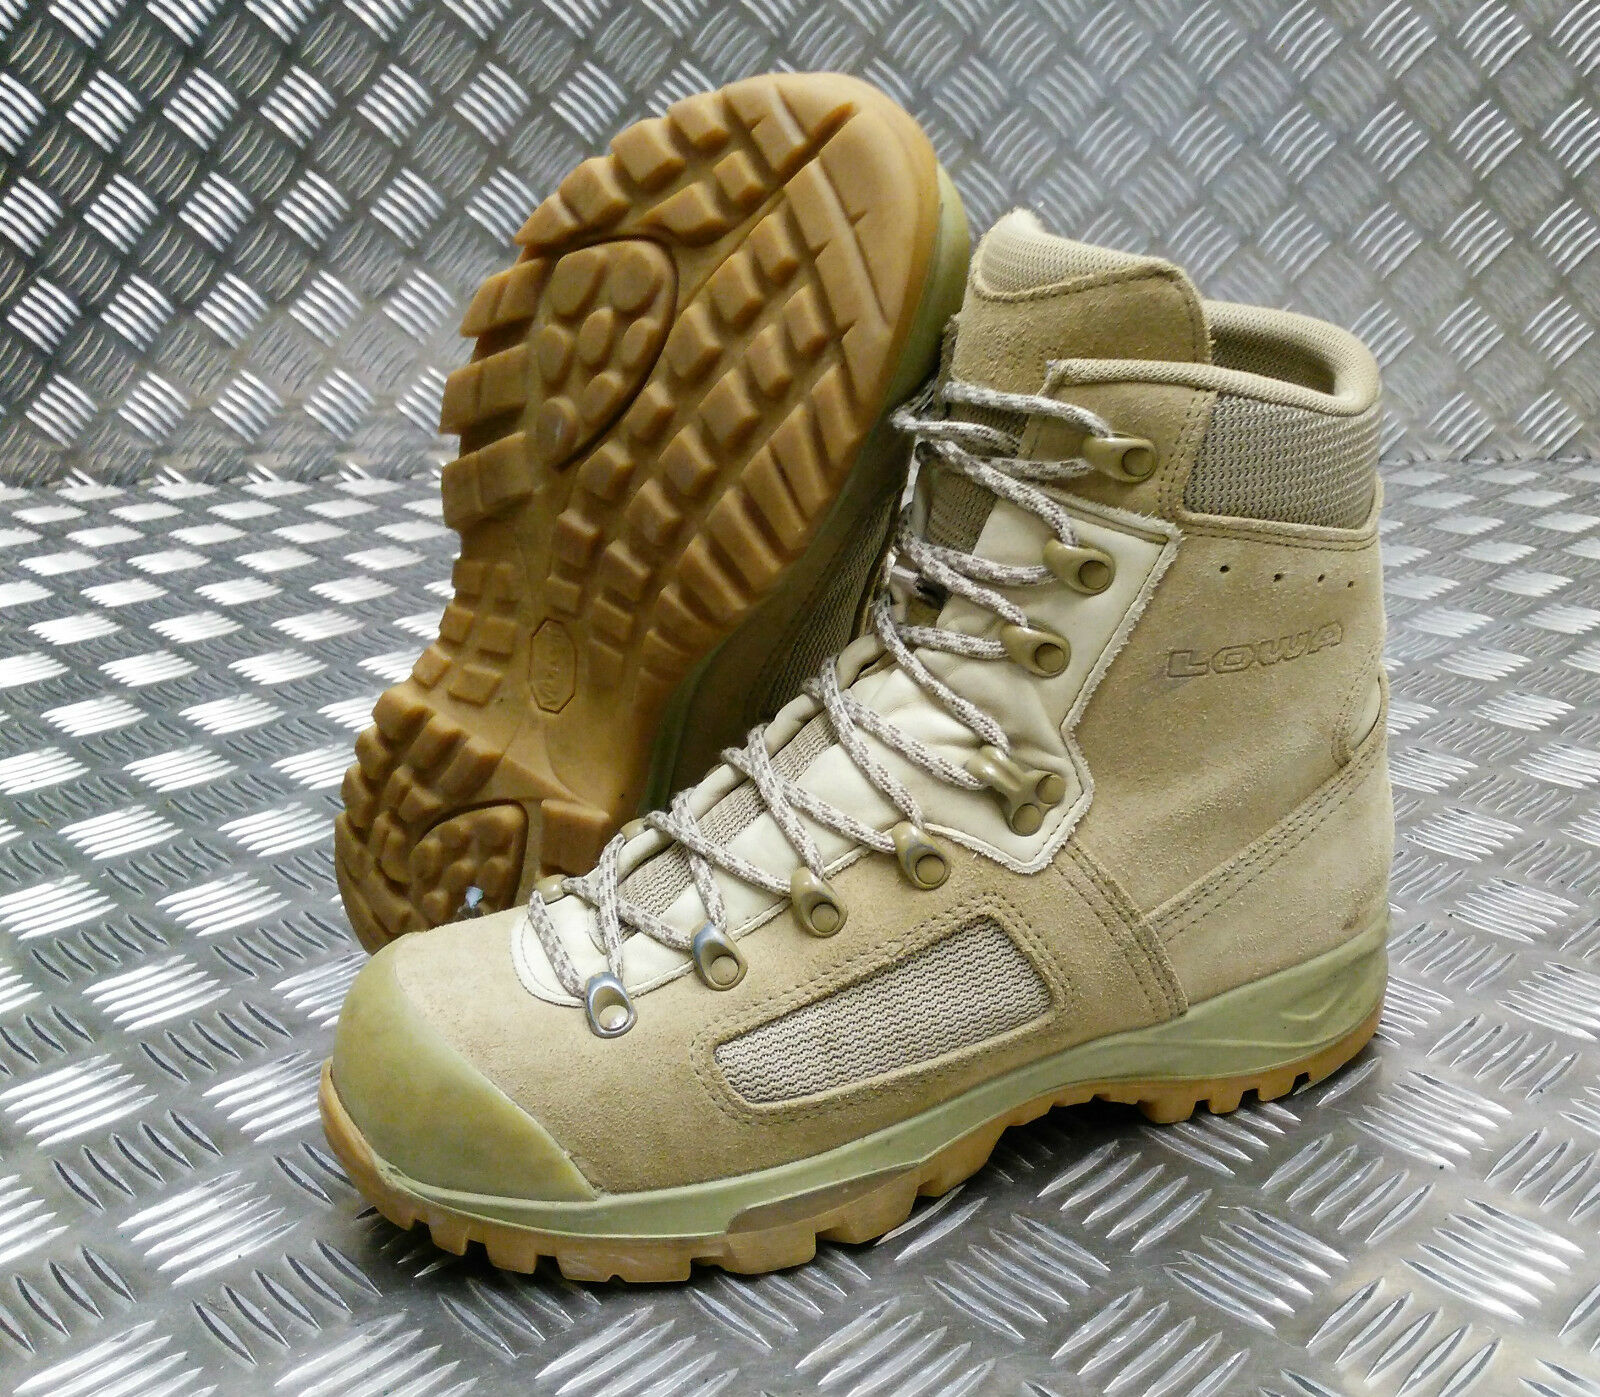 Genuine British Army Issue Lowa Elite MOD SL deserto pattuglia d'Assalto/Combattimento Boot SL MOD 44a17e